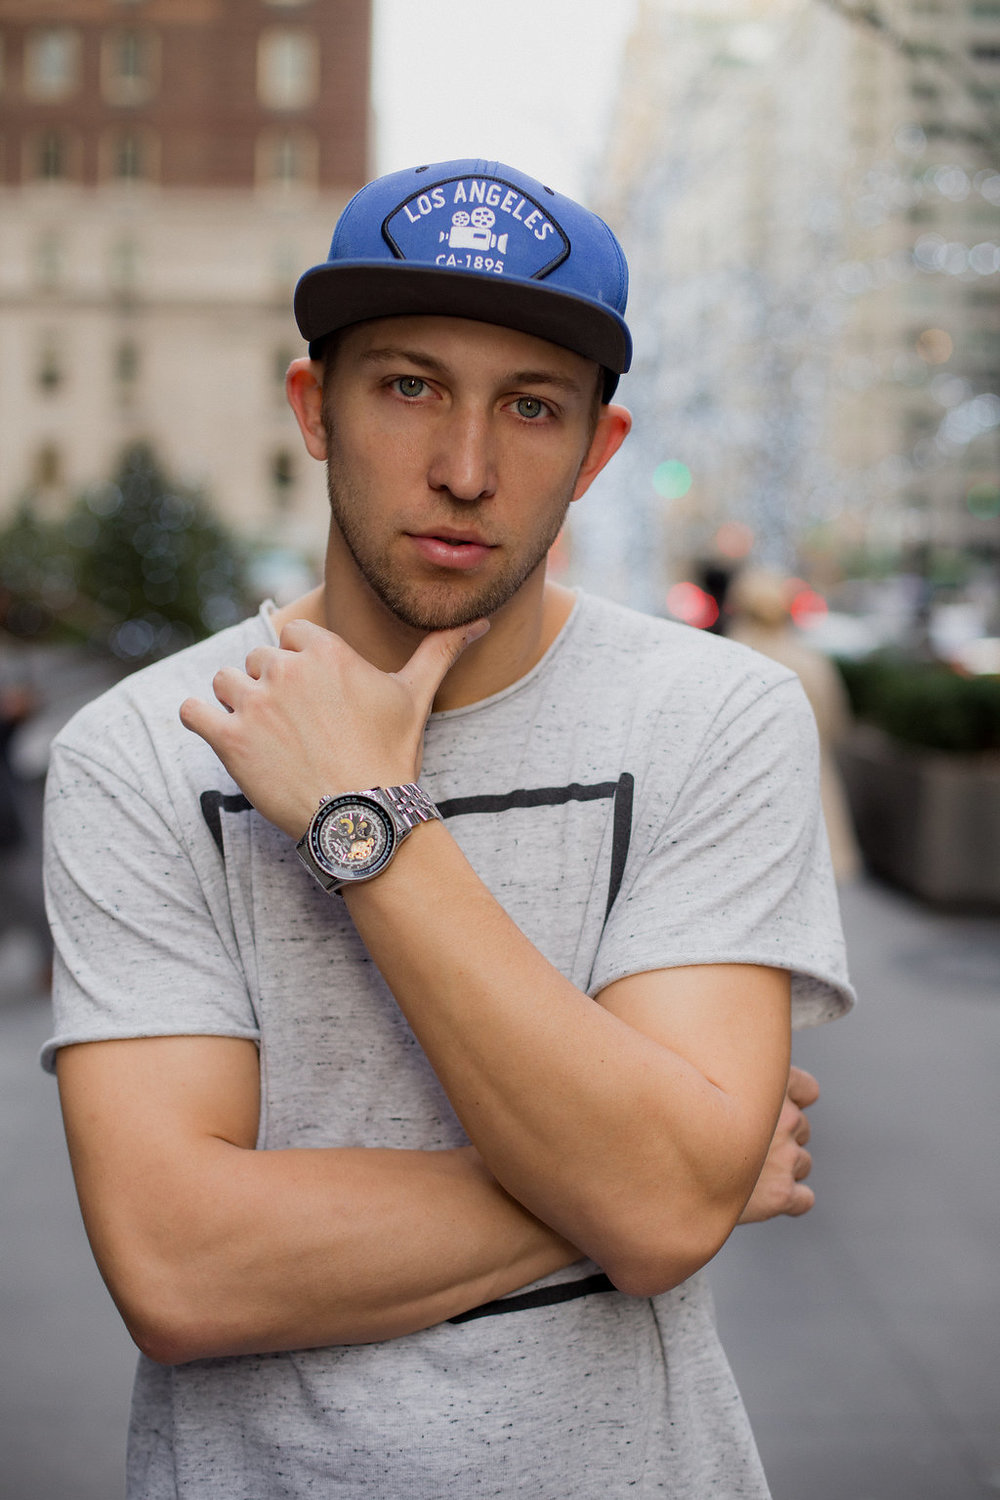 Matt Steffanina American Dancer and Choreographer